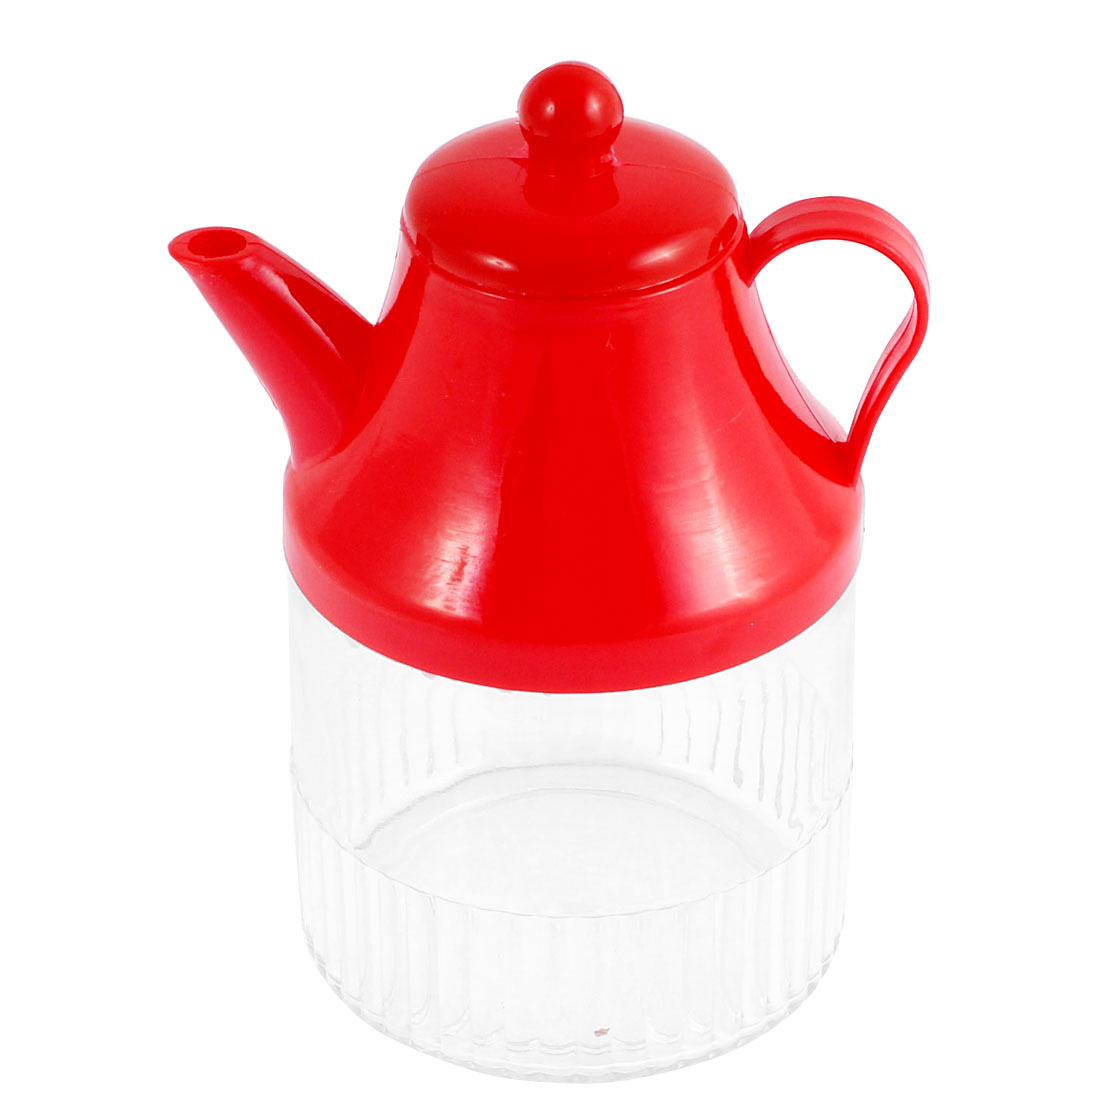 Kitchen Plastic Oil Flavoring Soy Vinegar Cruet Bottle Holder Red Clear 400ml